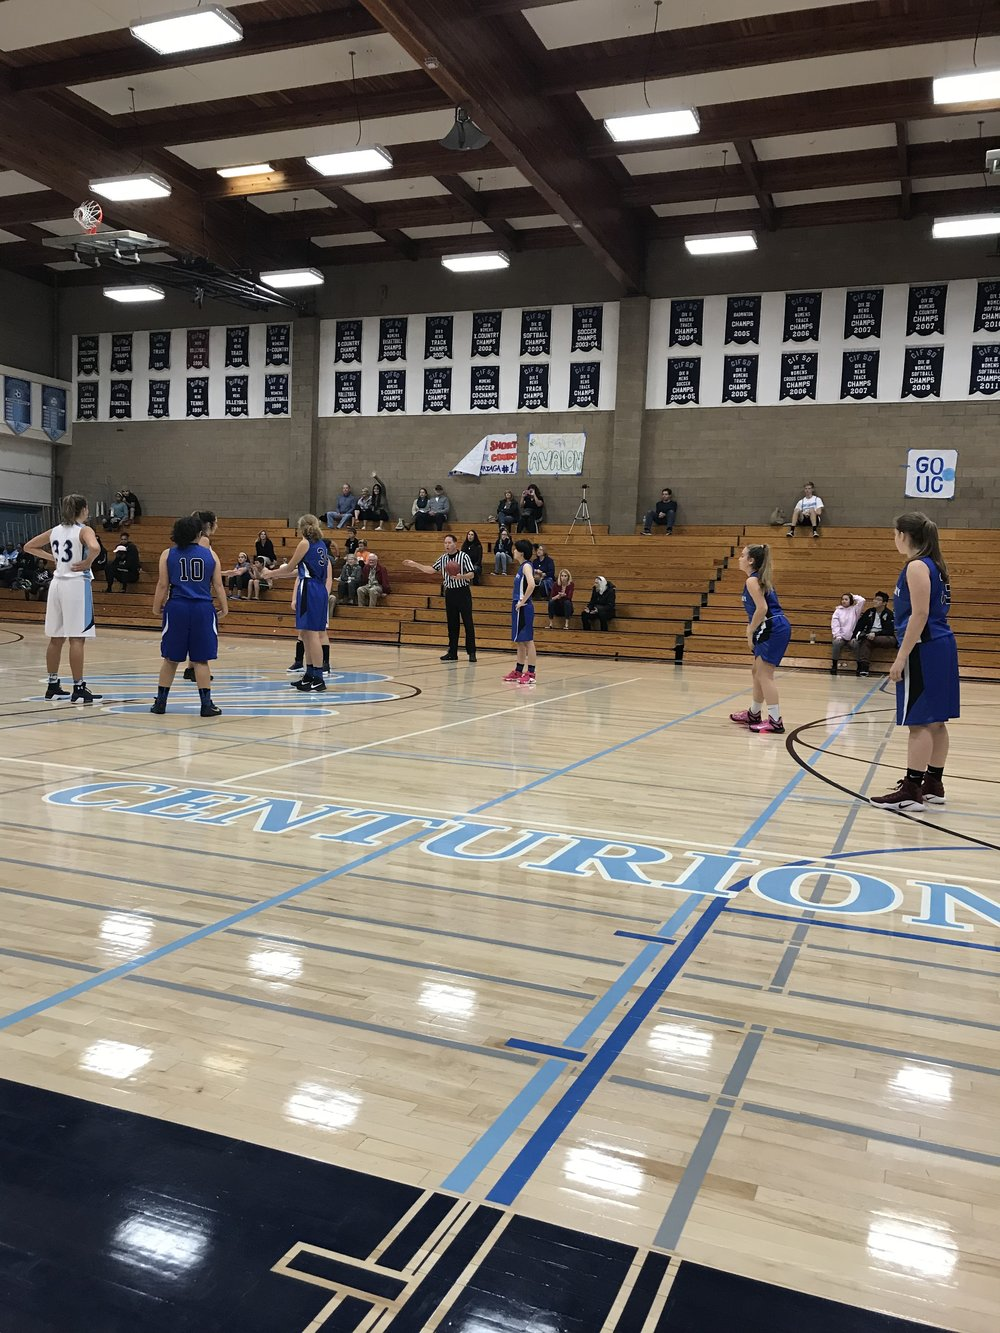 First game of the season for the Lady Torreys girls basketball JV team!